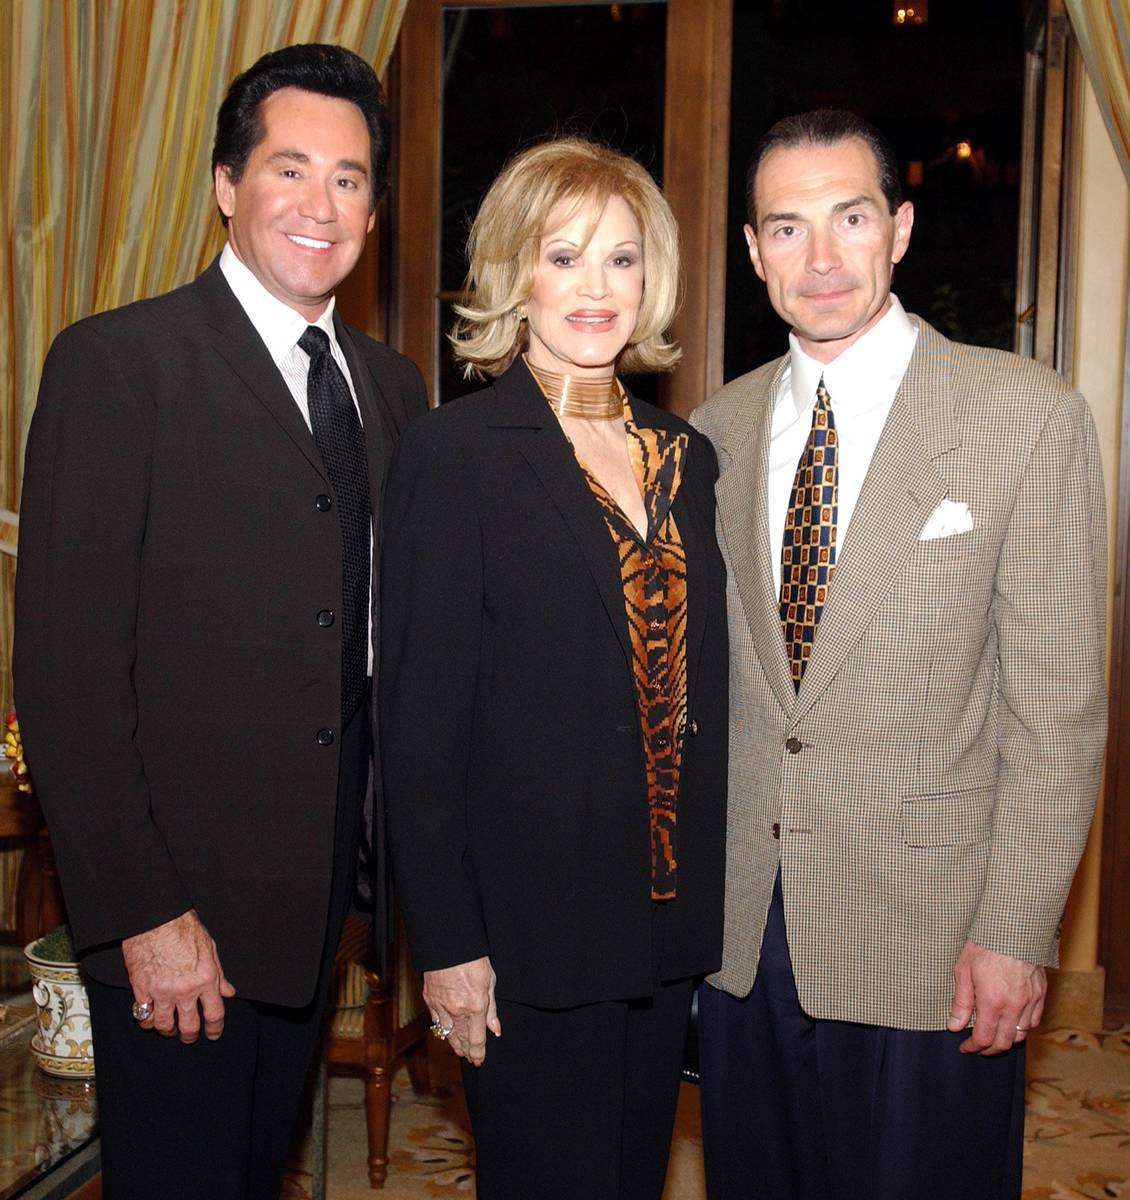 Wayne Newton, from left, Phyllis McGuire and Chairman and CEO of MGM Alex Yemenidjian, at The M ...